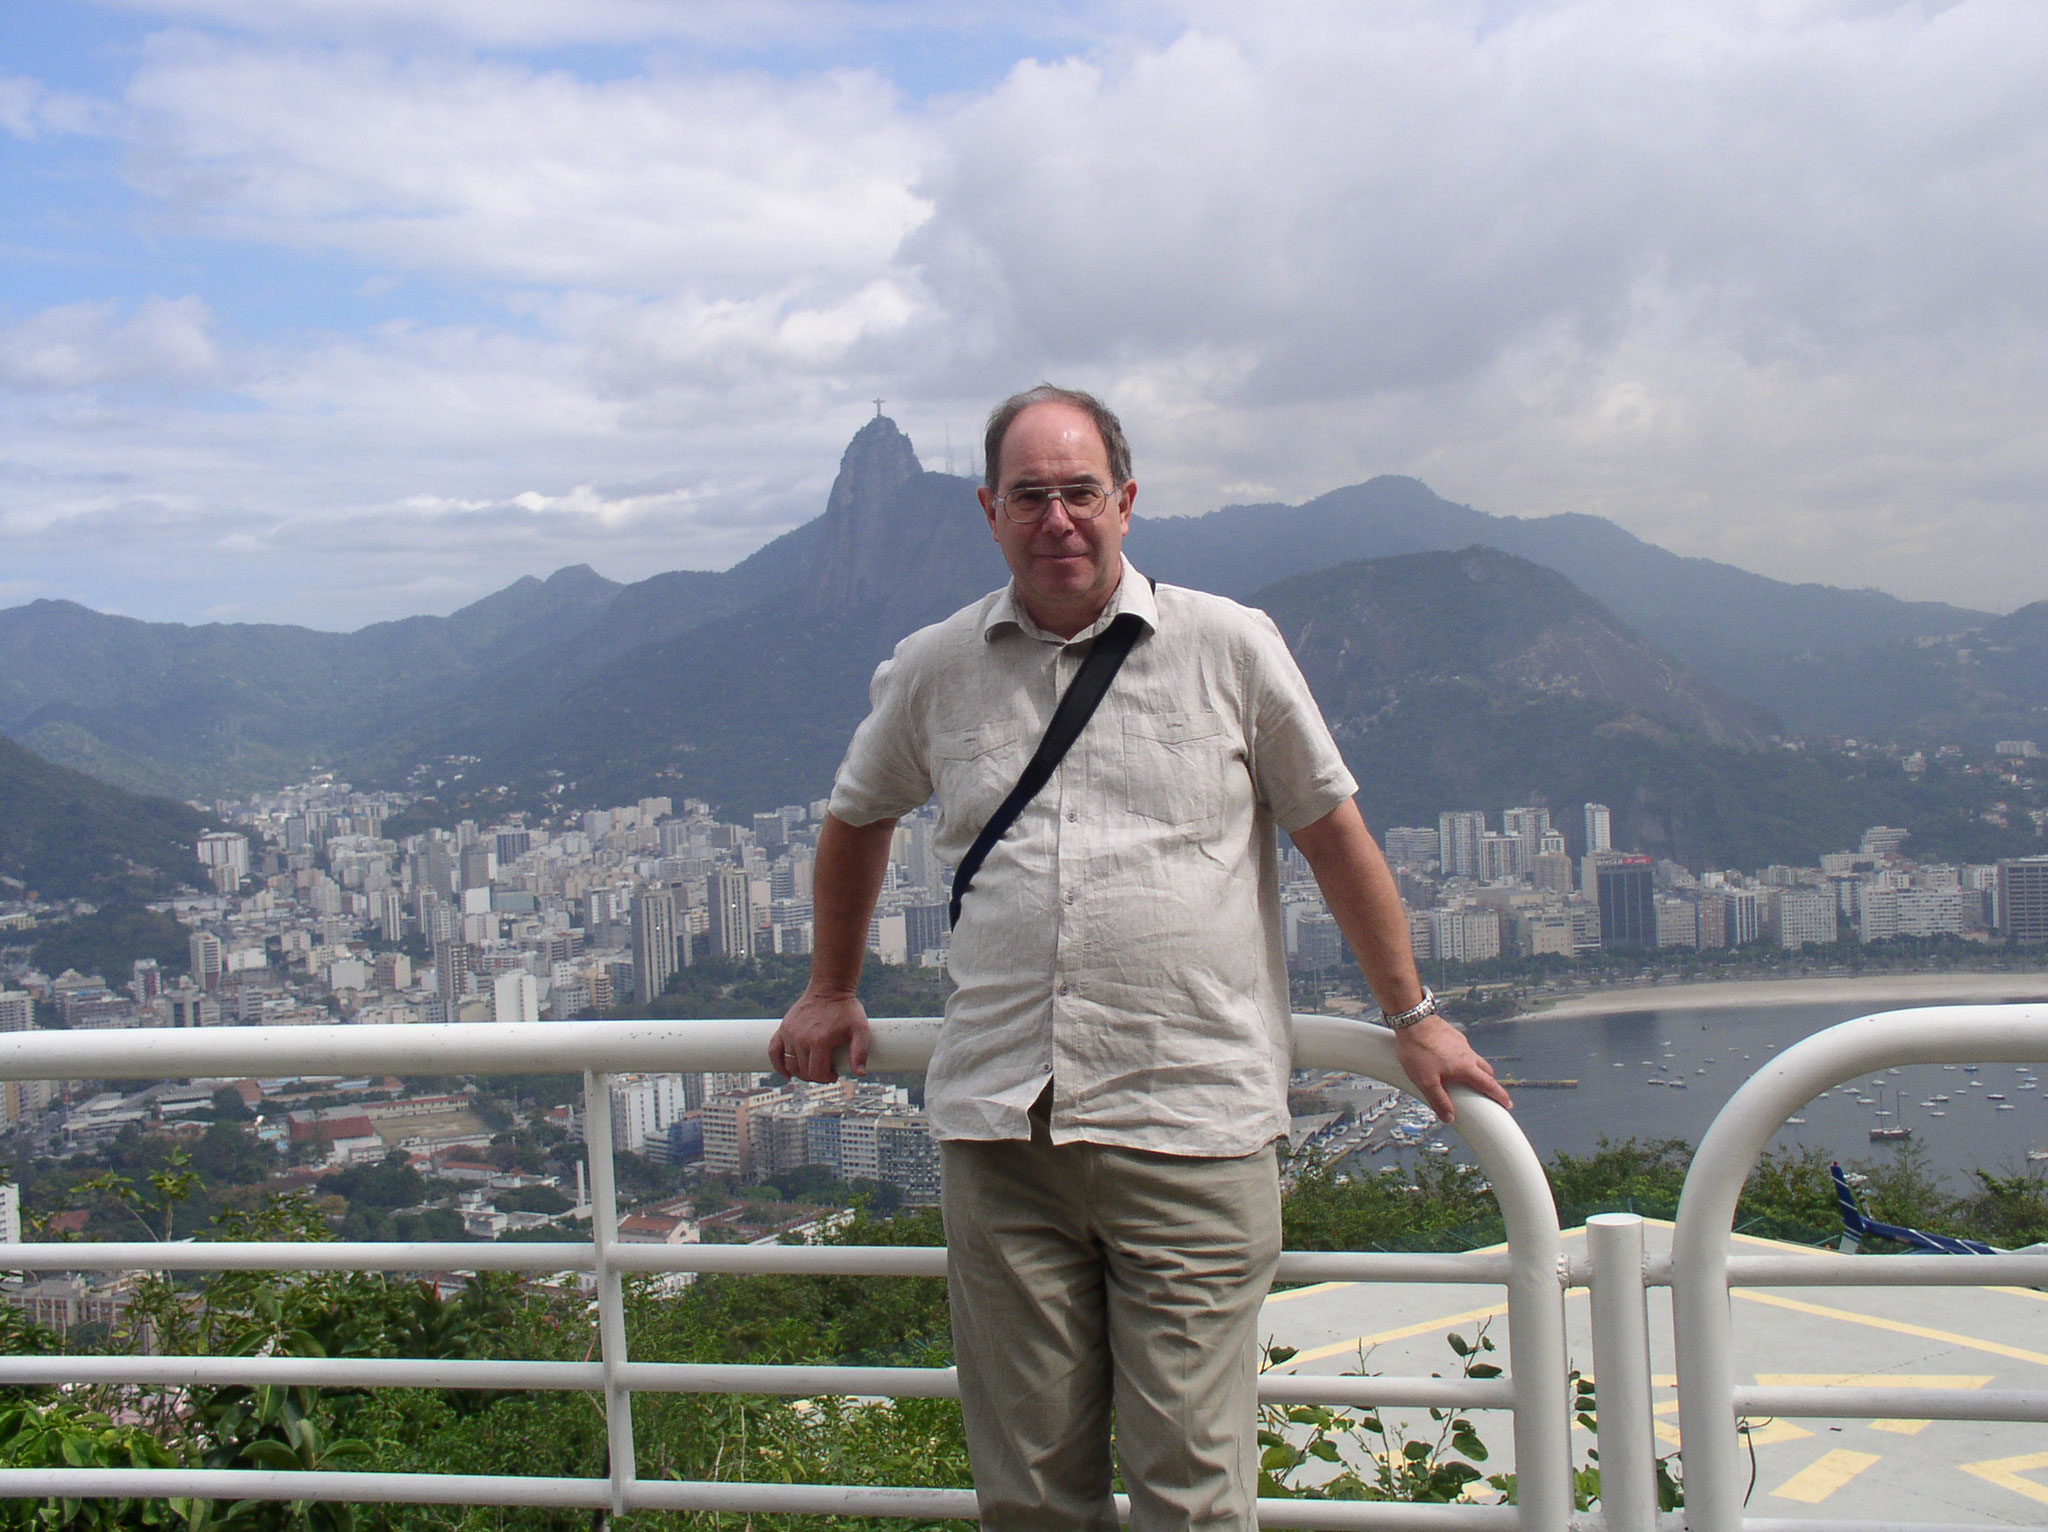 Walther in Rio 2003